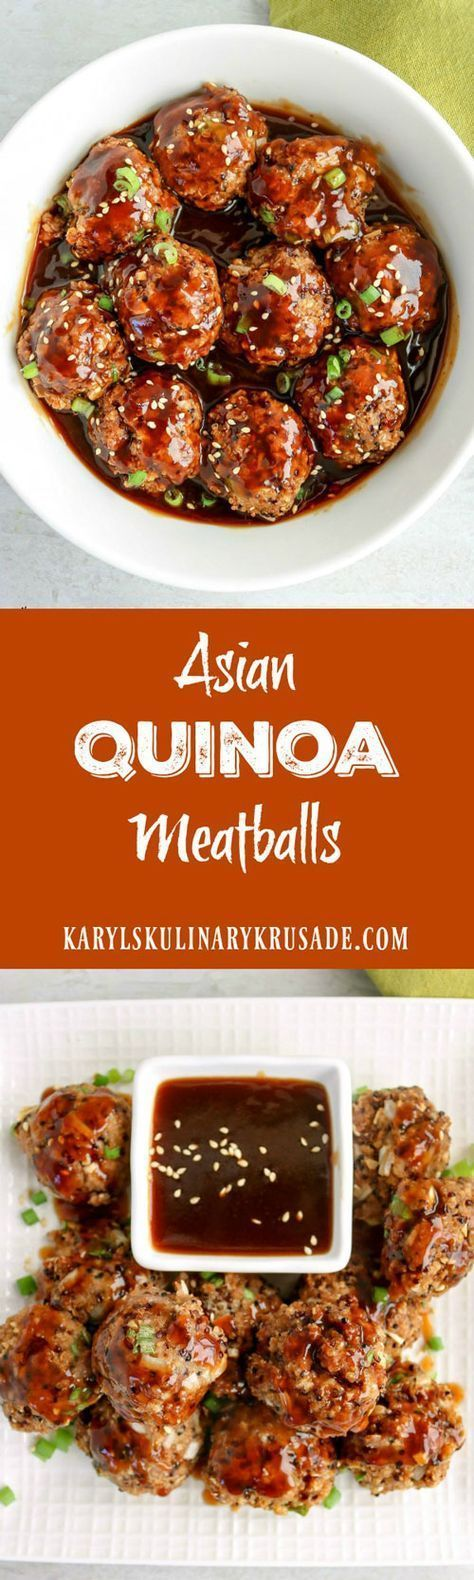 Asian Quinoa Meatballs is the perfect appetizer or lunch. Quinoa and ground turkey form a delicious and healthy meatball that you will love. Top or dip with an Asian-style sauce for a wonderful, silky finish #quinoa #turkey #baked #meatballs #healthy #baked #asianinspired #karylskulinarykrusade